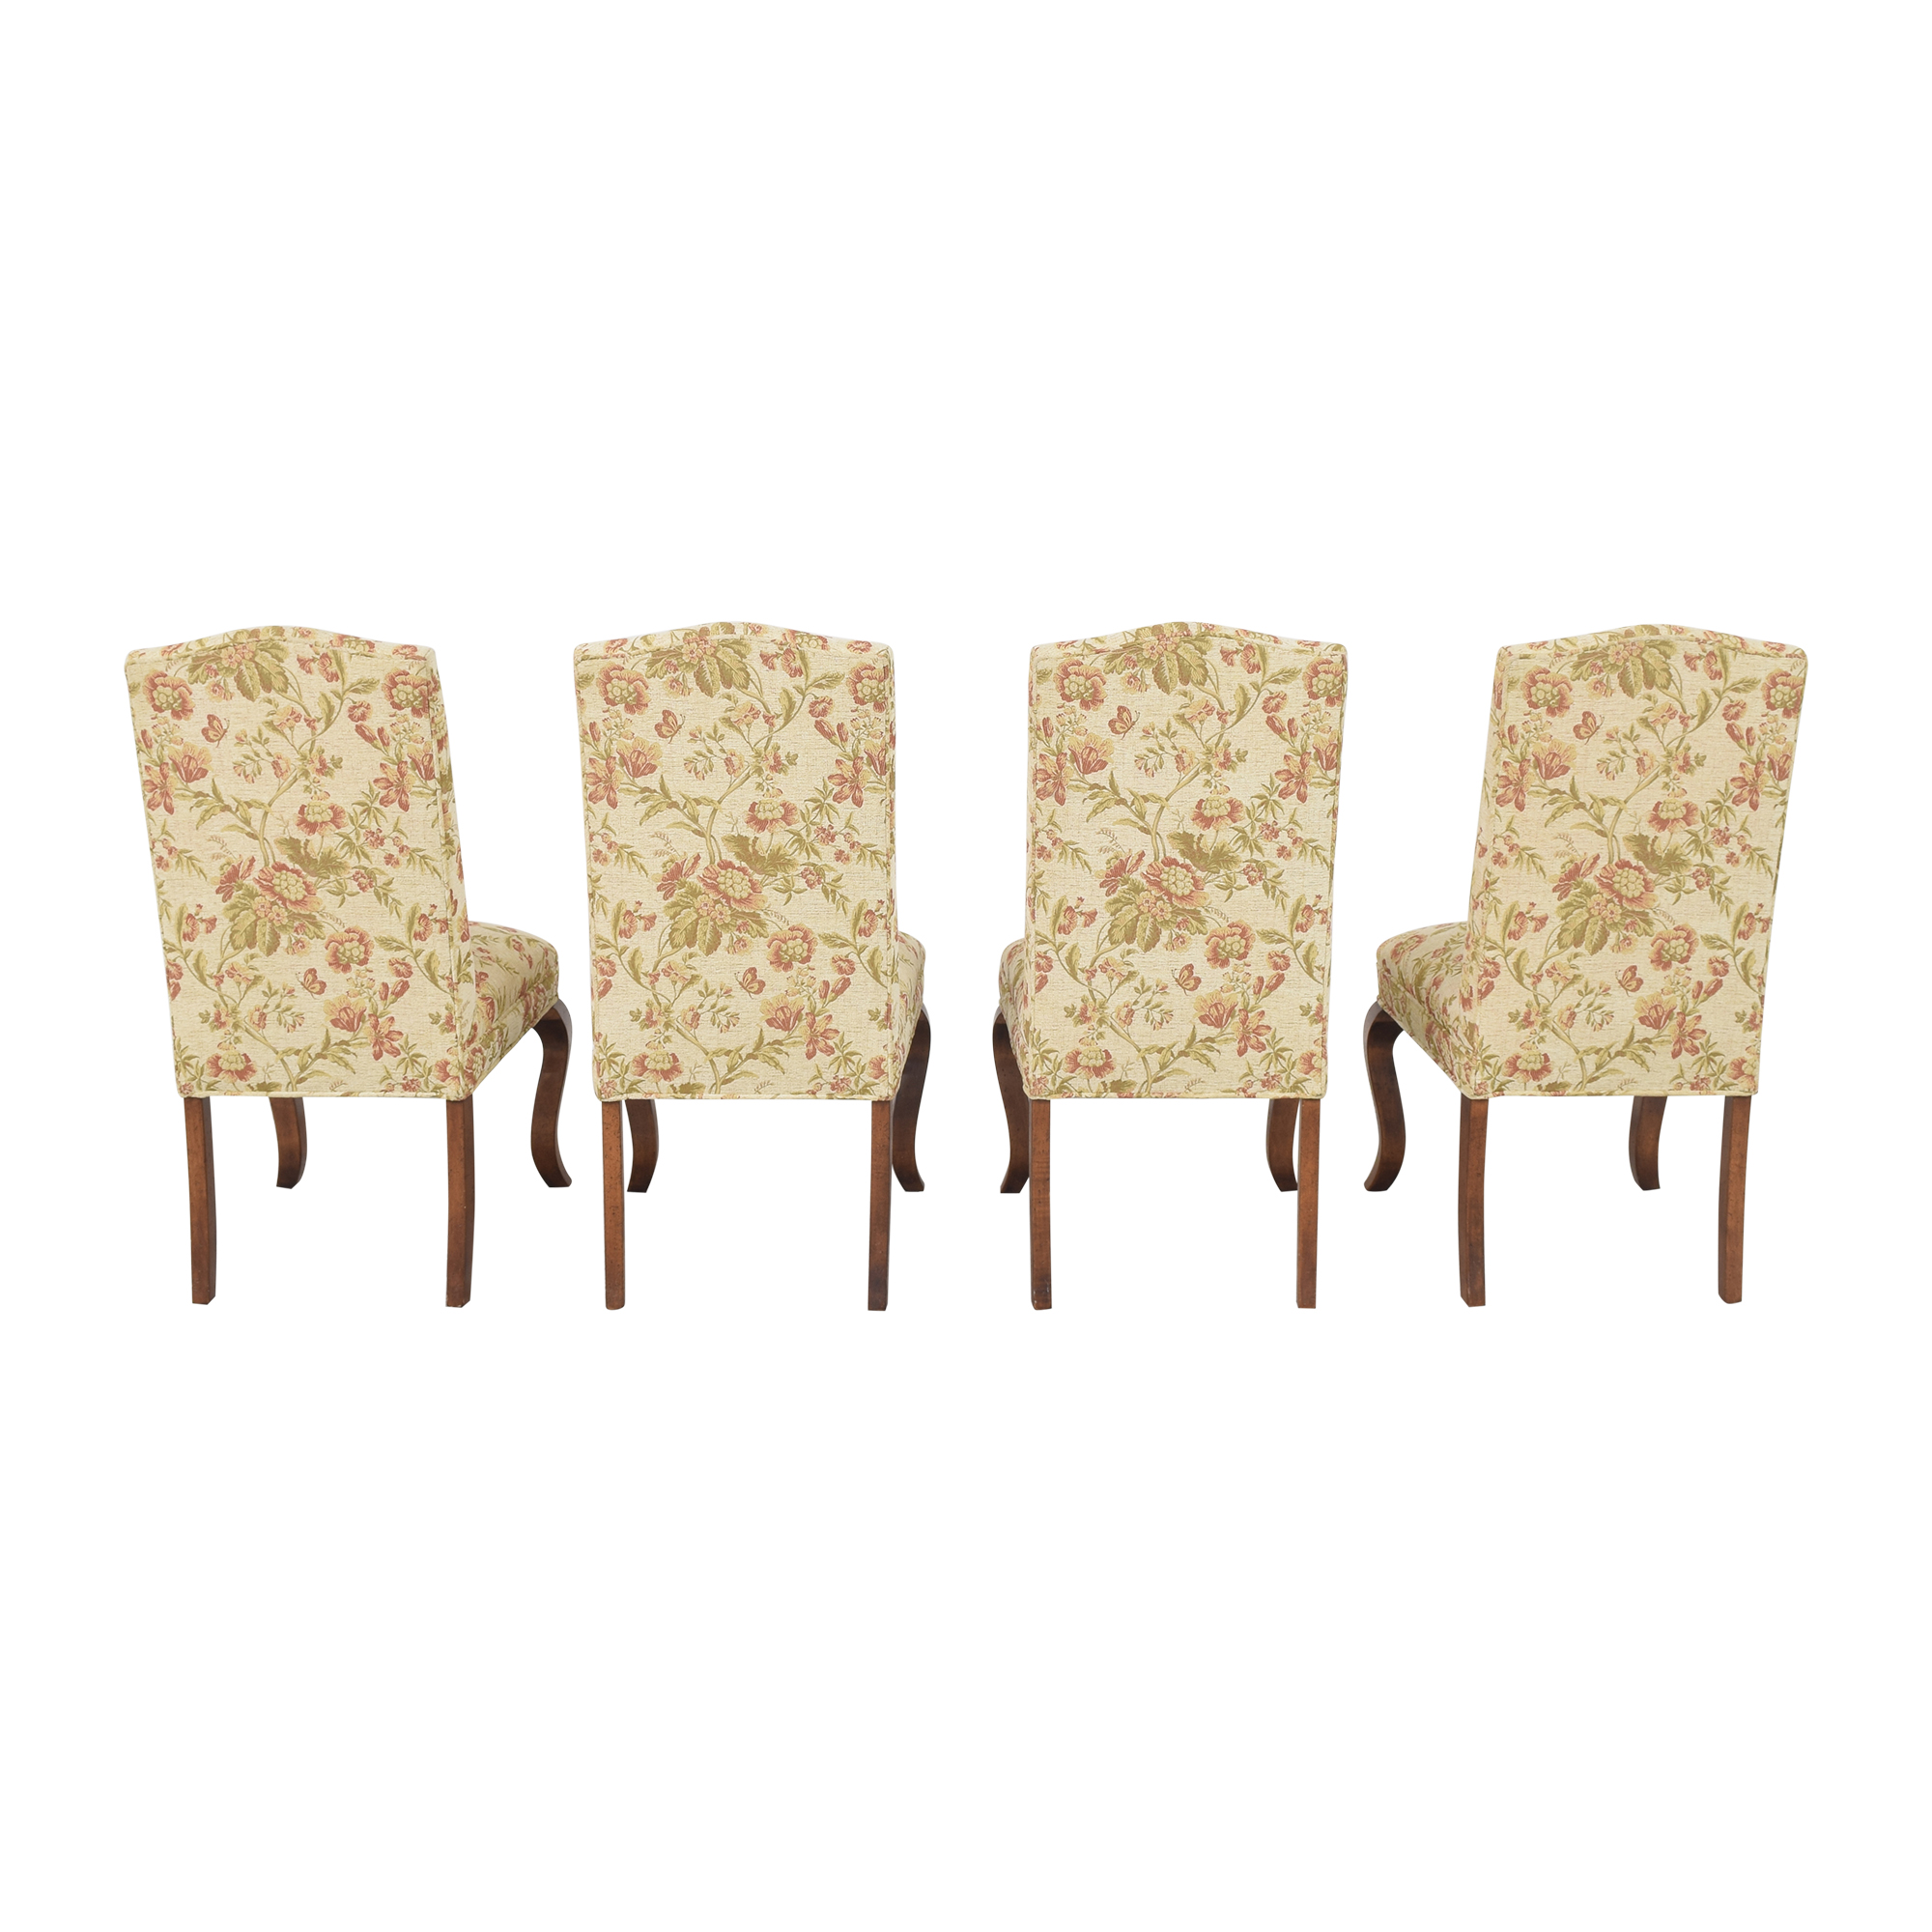 buy Queen Anne Upholstered Dining Chairs  Chairs